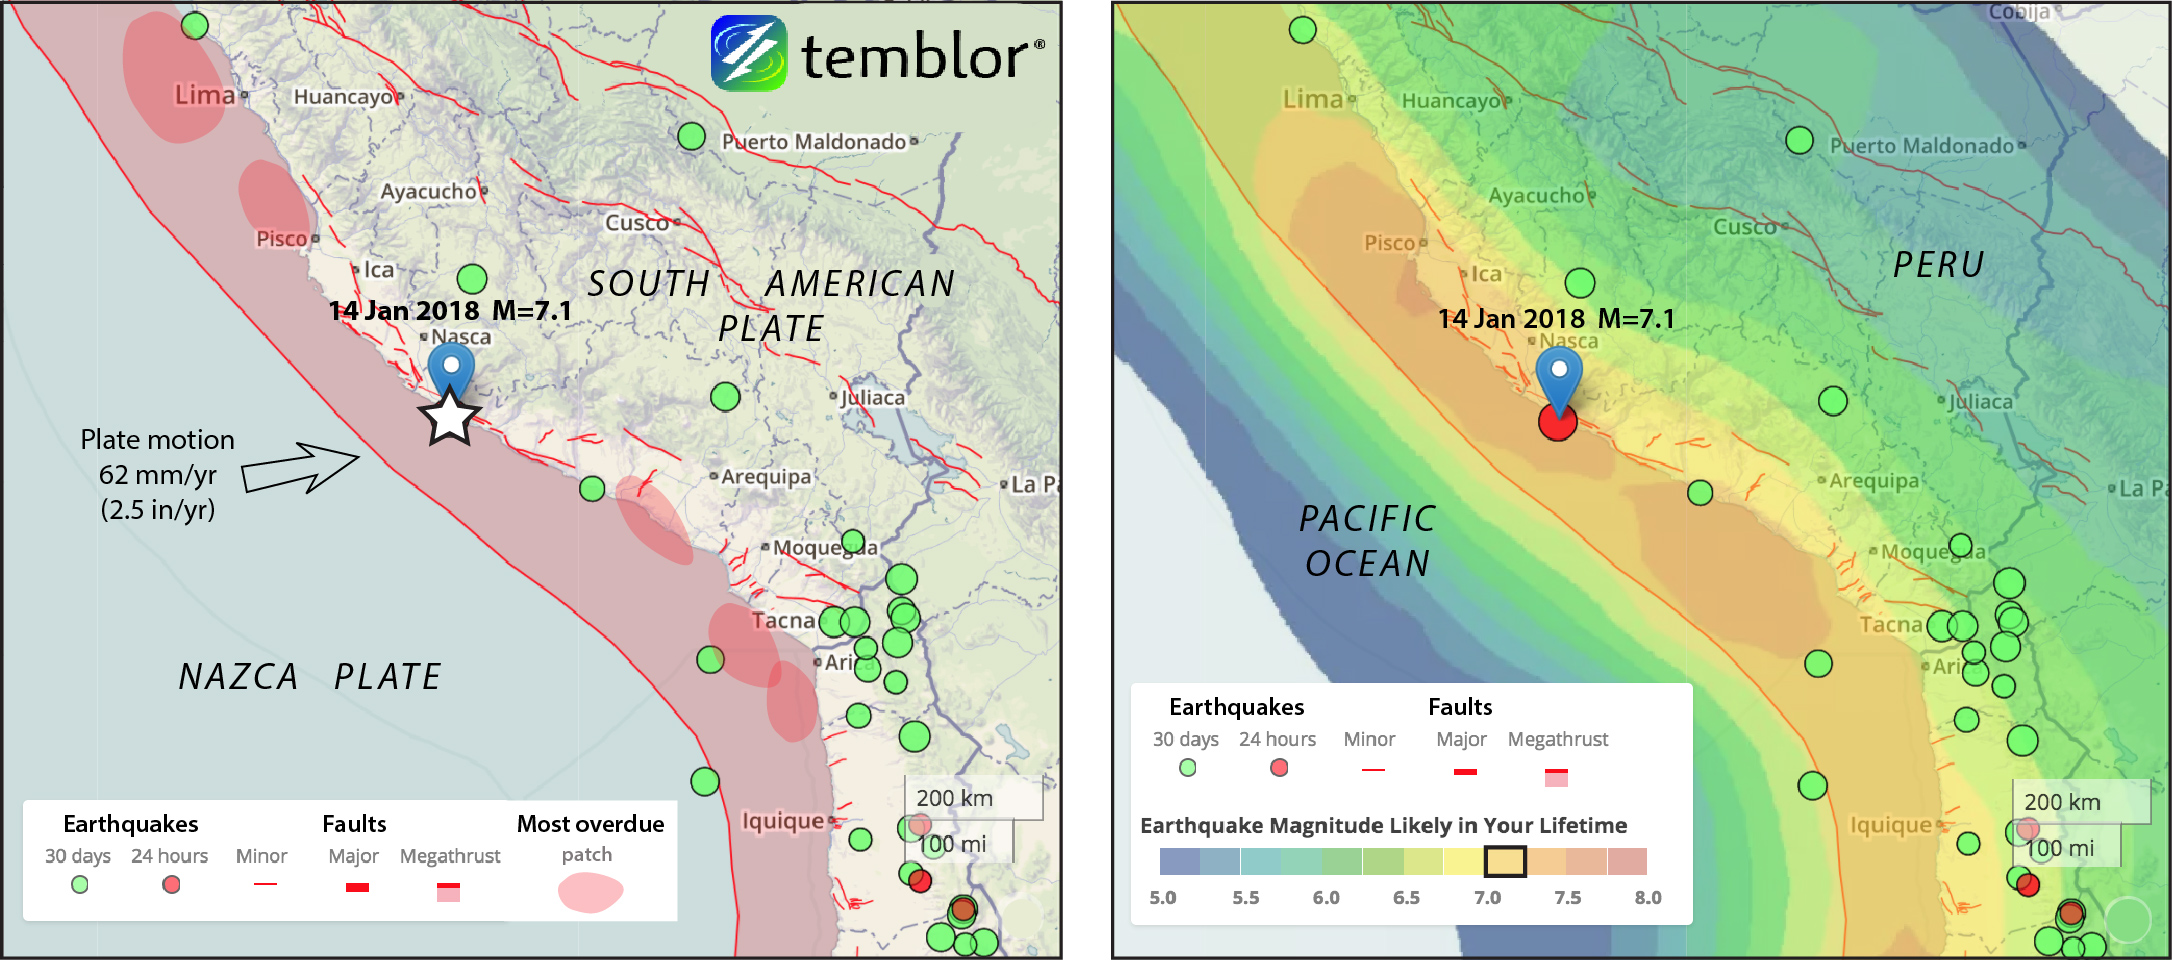 In the left panel, regions identified by Chilieh et al (2011) as having a large slip deficit are shown as the 'Most overdue' patches. These are the sites where the megathrust is stuck and is accumulating stress at the highest rate, as inferred from GPS measurements. But today's shock did not strike in or near one of these stuck patches, perhaps because the rupture area of a M=7.1 quake, about 50 x 50 km, is too small to be resolved by GPS.